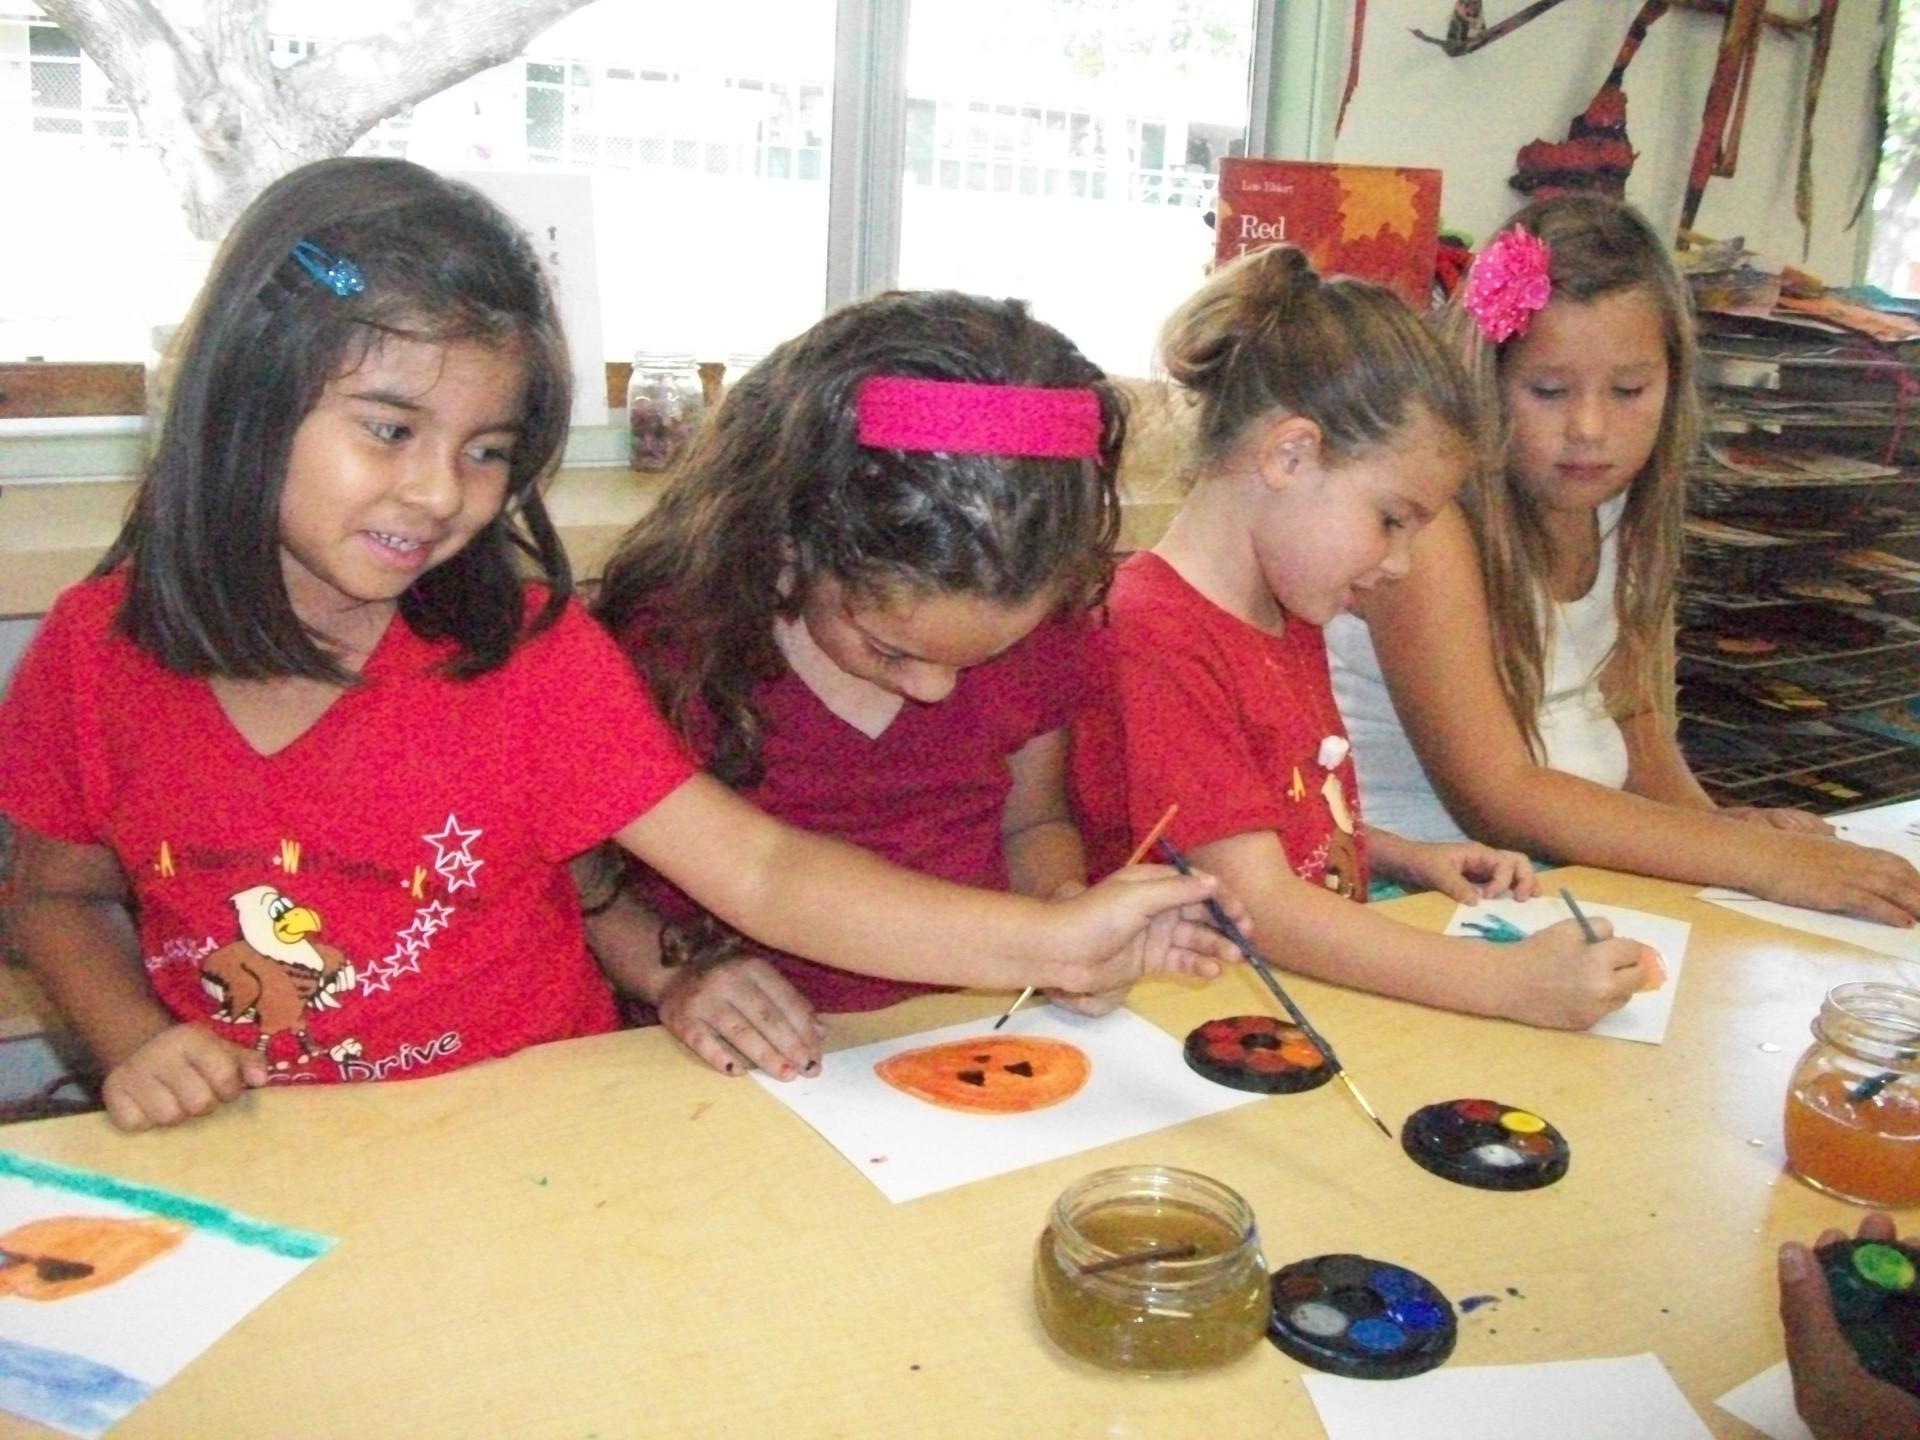 Children are exploring water colors in the classroom.